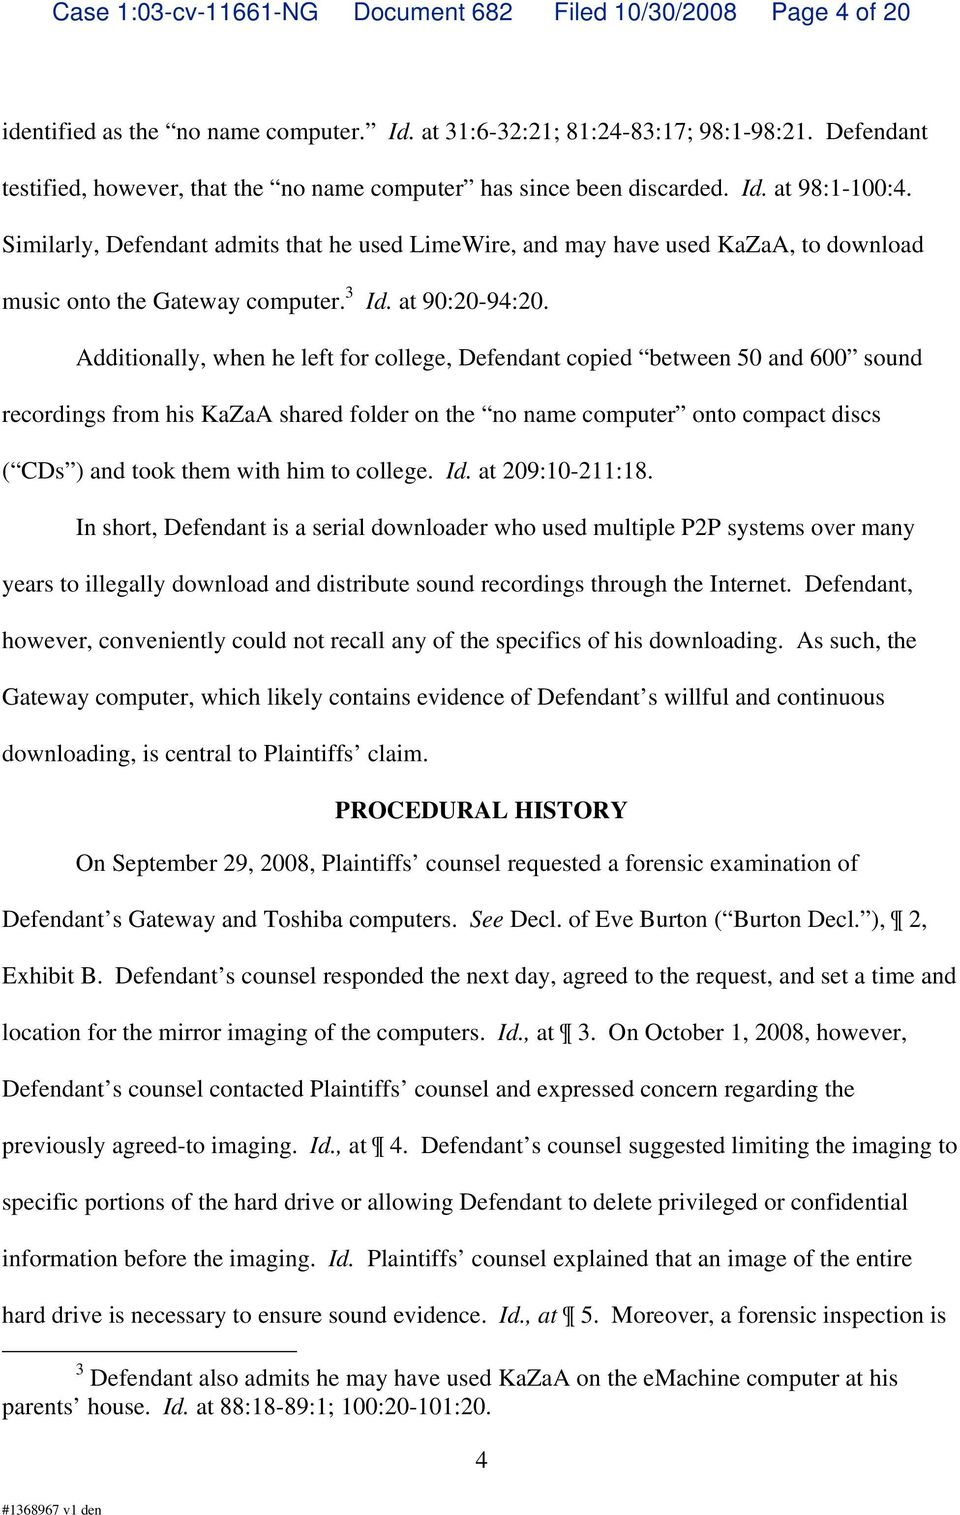 Similarly, Defendant admits that he used LimeWire, and may have used KaZaA, to download music onto the Gateway computer. 3 Id. at 90:20-94:20.